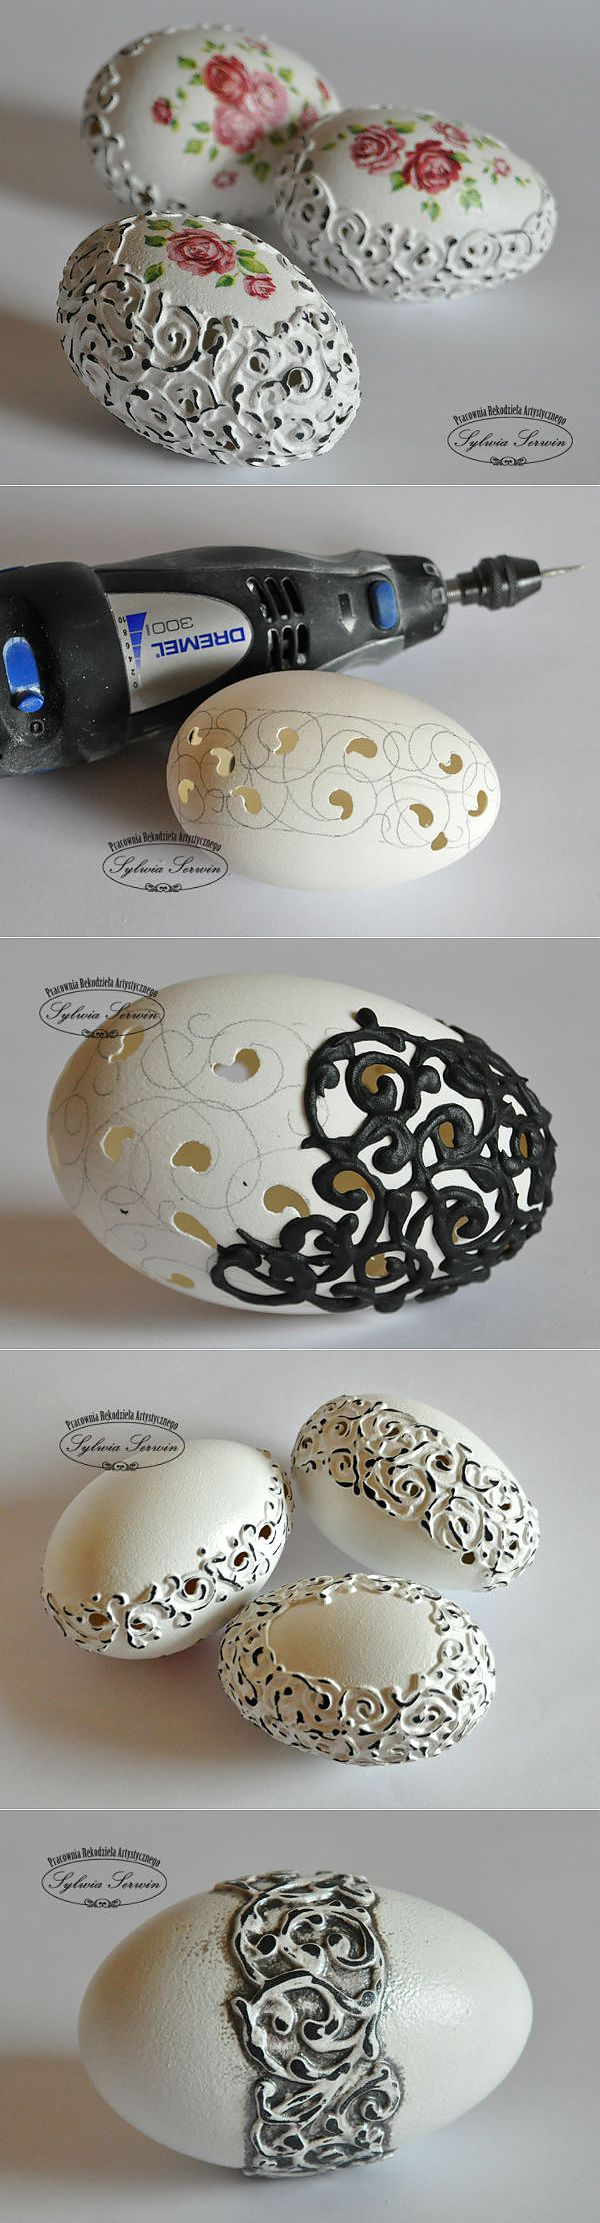 Decor of an Easter egg in shabby-chic style. MK with a photo.